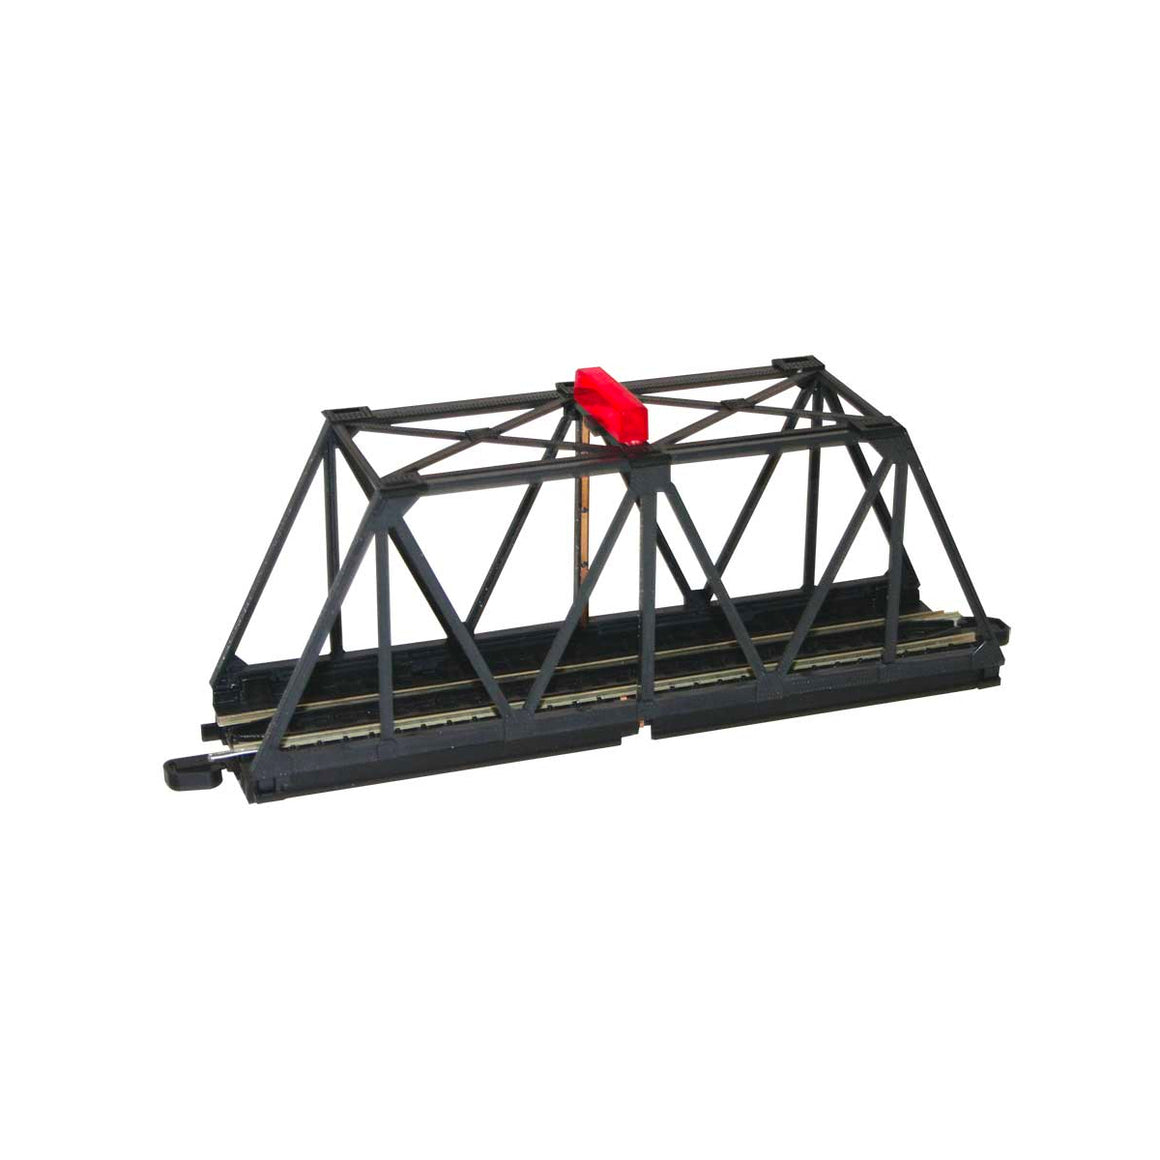 HO Scale: E-Z Track Truss Bridge with Blinking Light